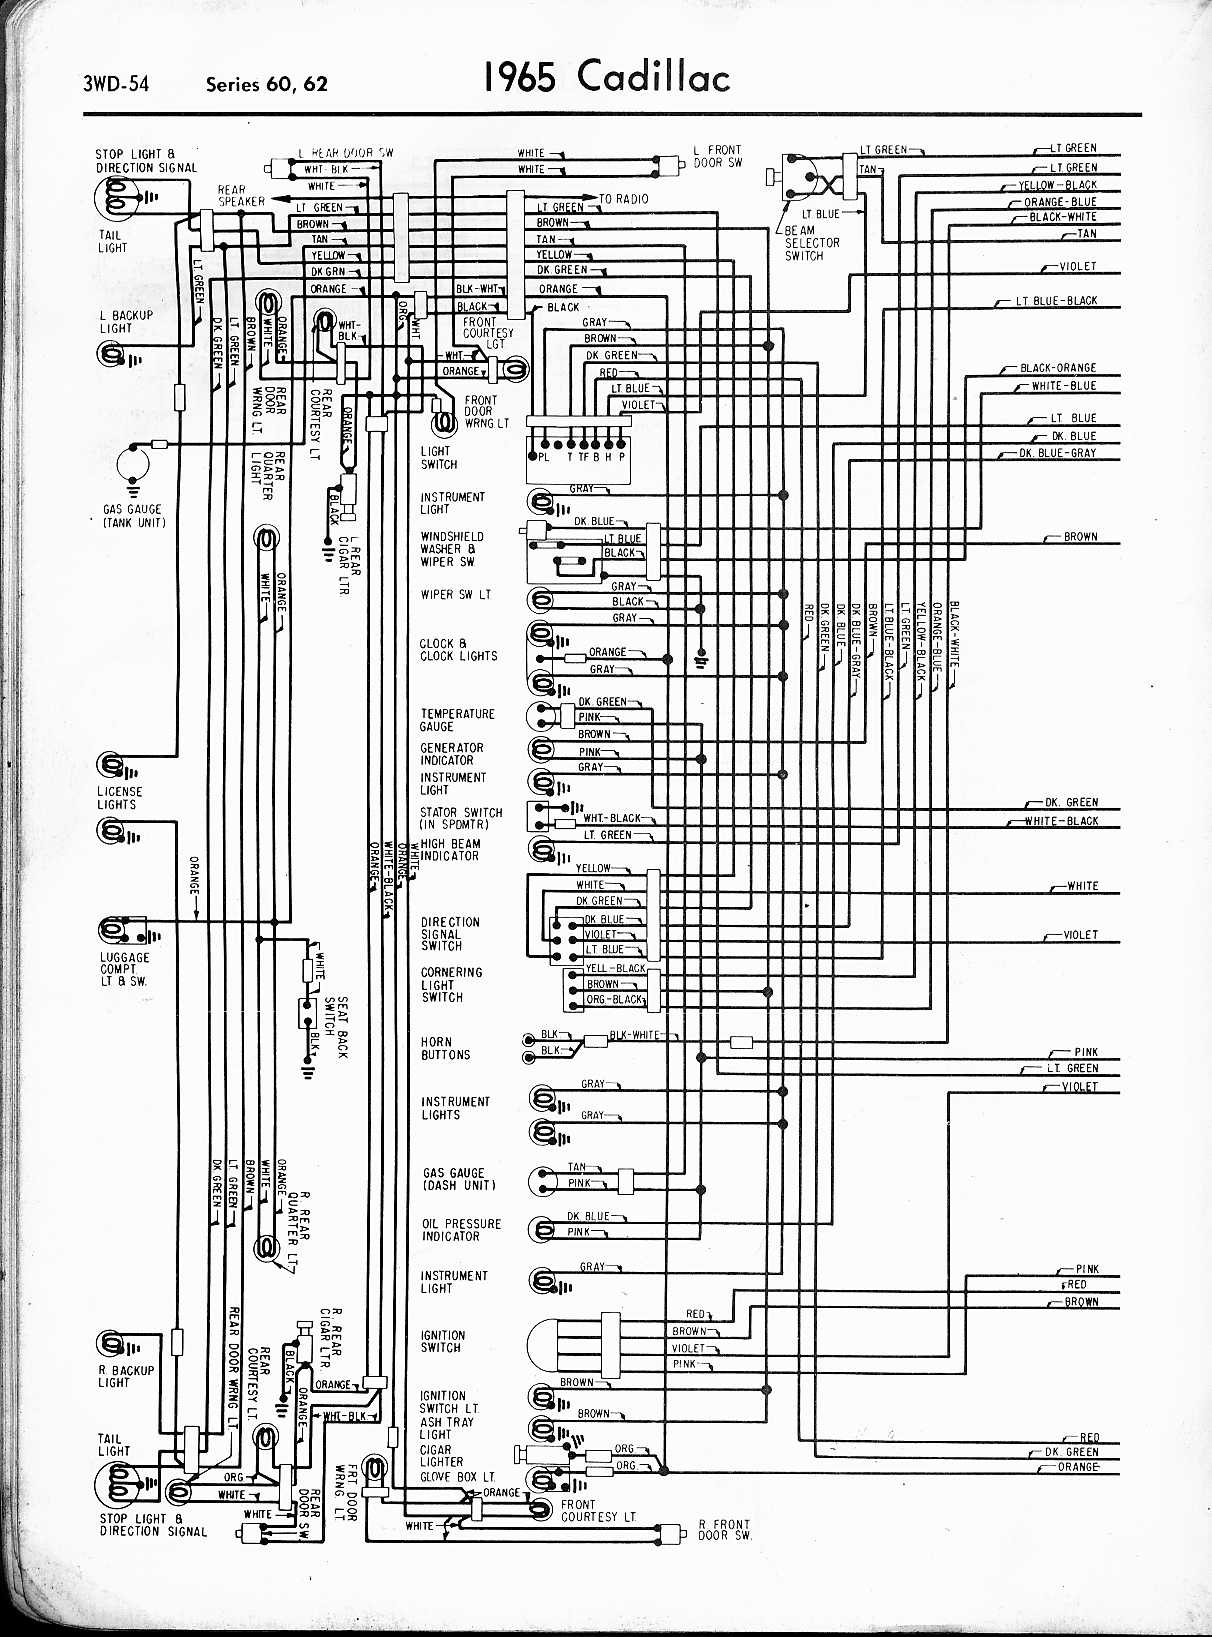 MWireCadi65_3WD 054 2000cad eldorado wiring diagram,eldorado \u2022 j squared co 70 Cadillac Eldorado at bakdesigns.co